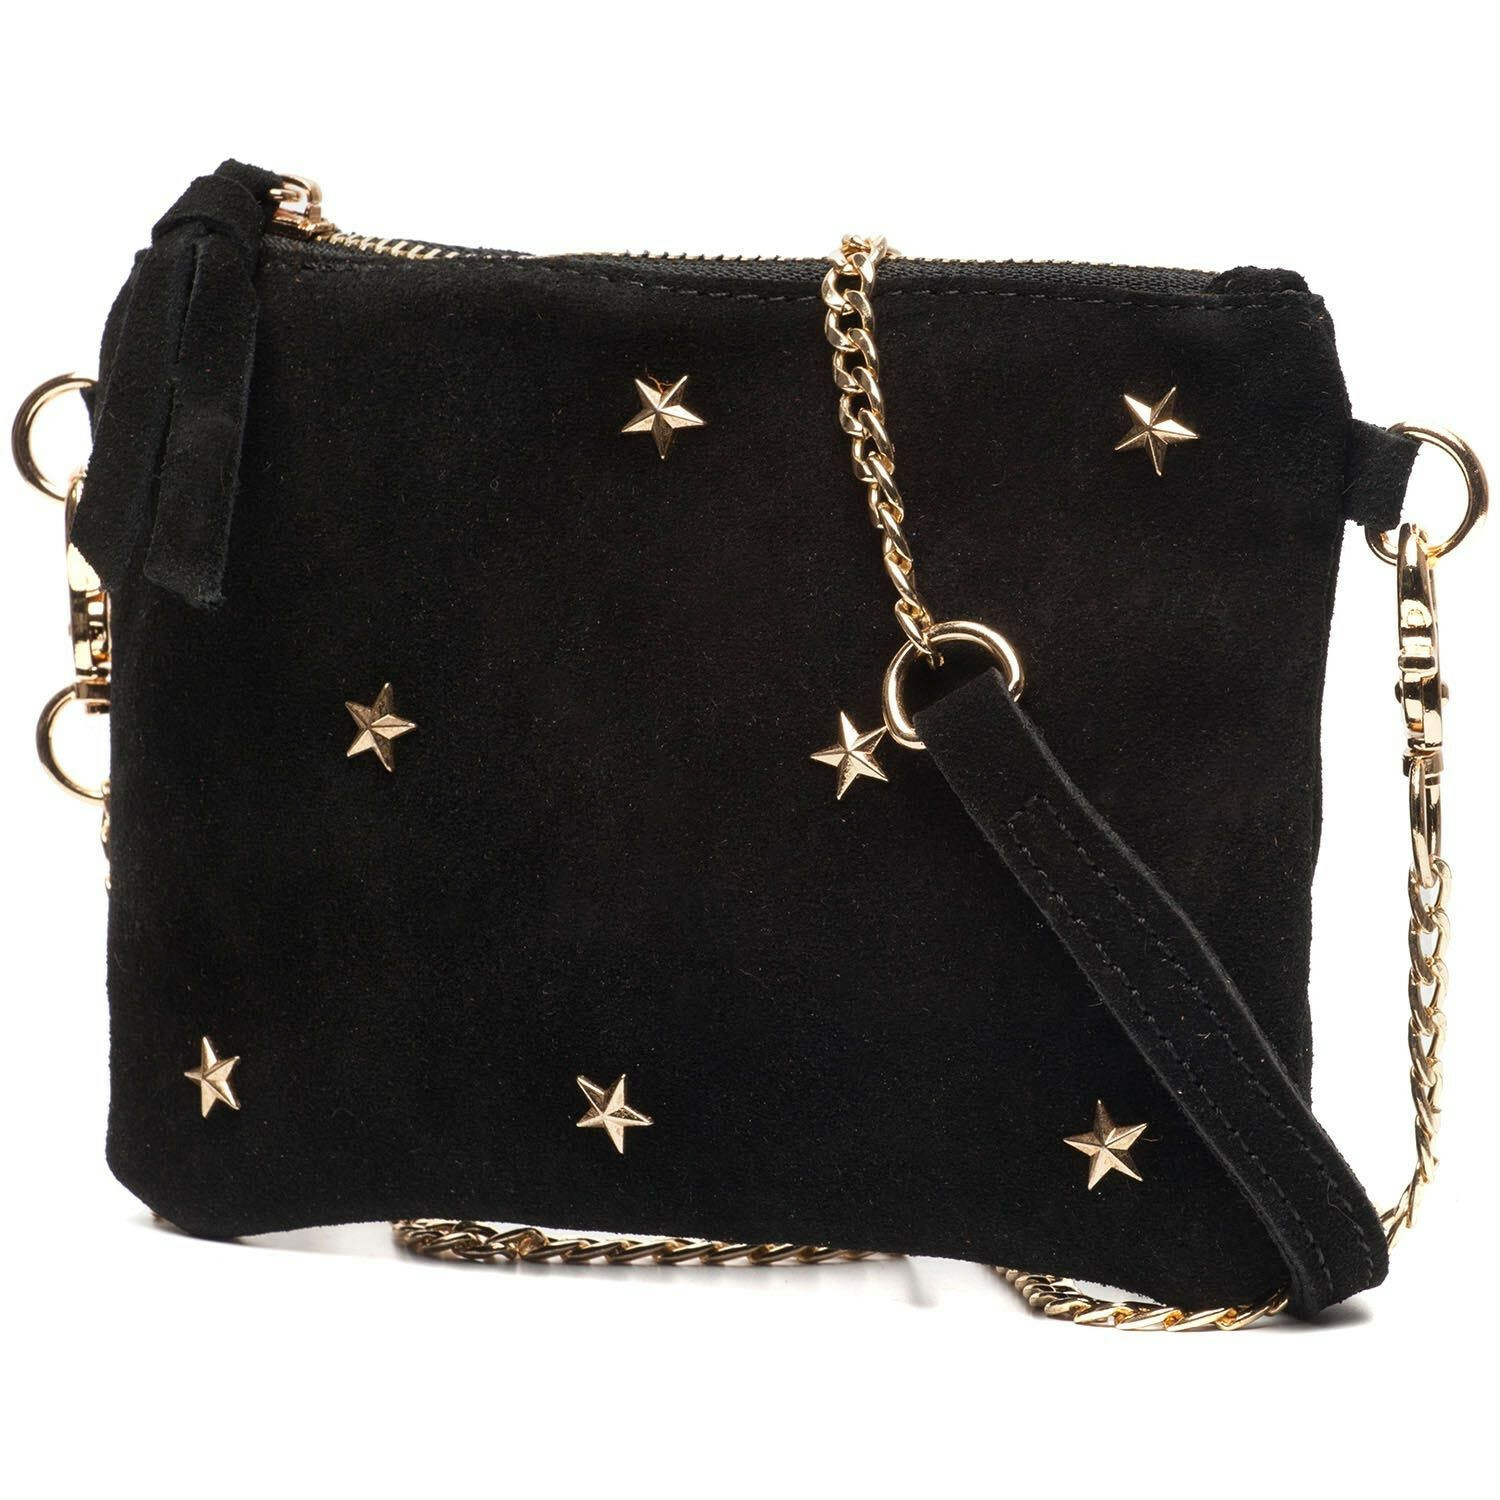 SMALL LEATHER STAR BAG